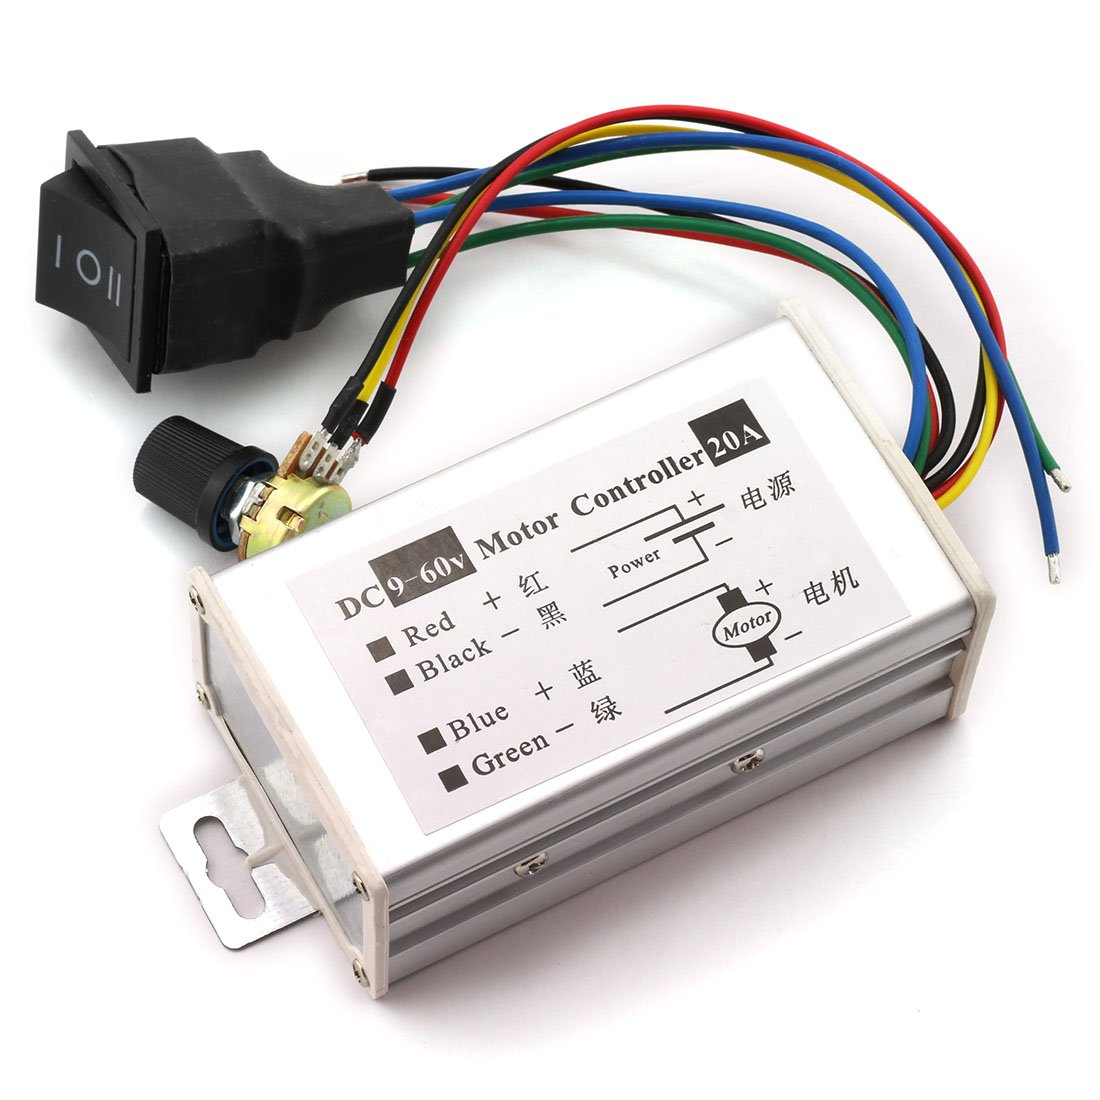 Waterproof High Power 20a Dc Motor Controller Dc 10v 12v 24v 36v 48v 60v Motor Drive Pwm Bldc Motor Controller Selling Well All Over The World Motor Controller Electrical Equipments & Supplies